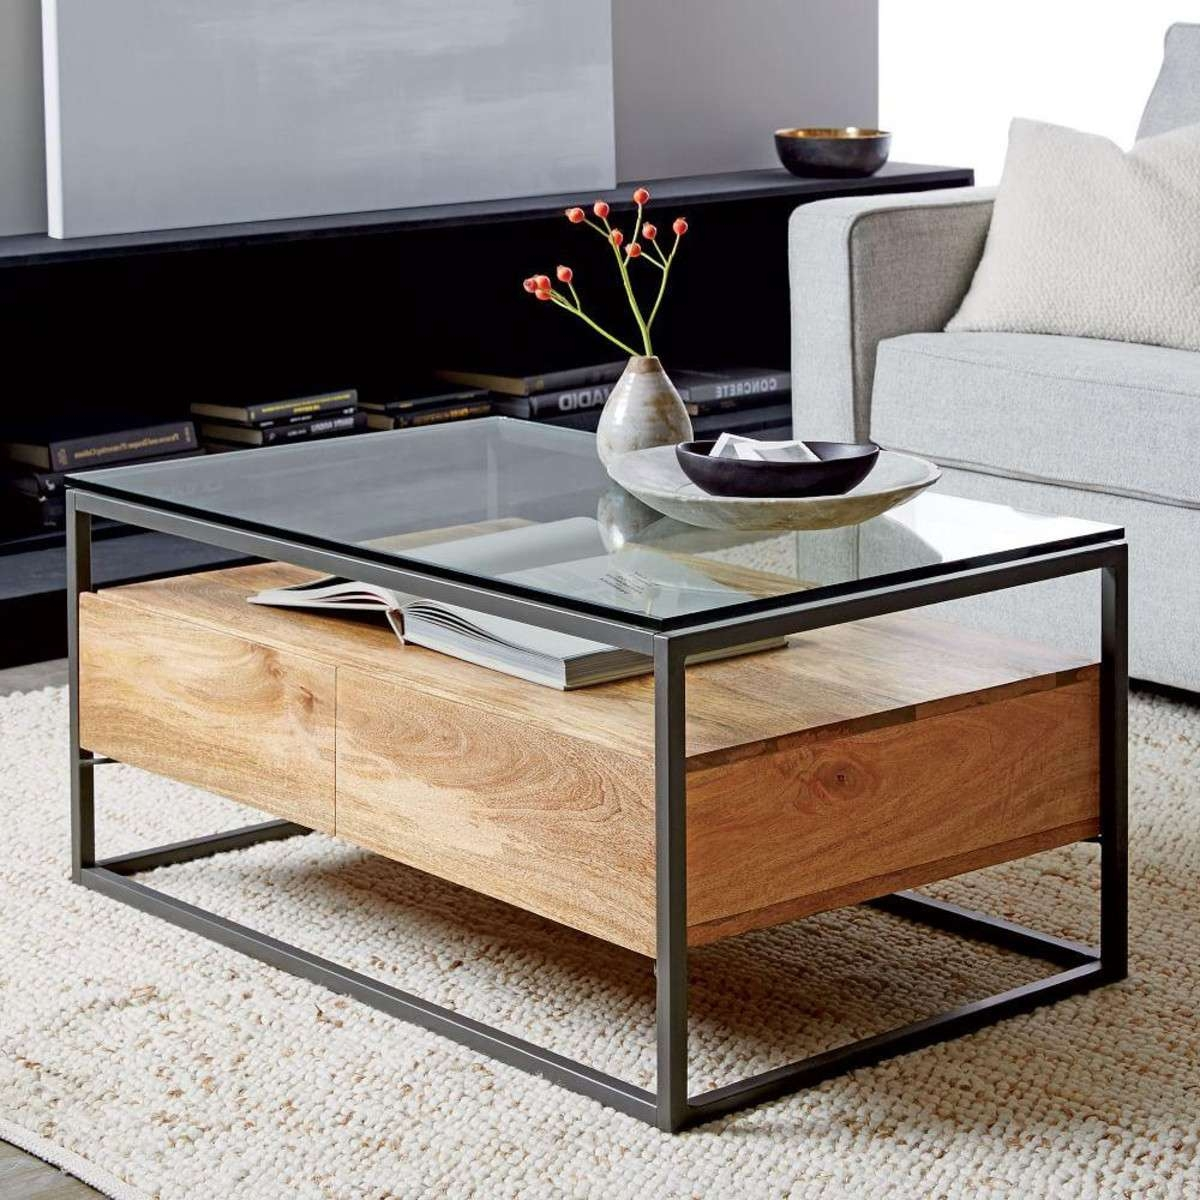 Coffee Tables : Furniture Nice Wood Coffee Table With Storage For Favorite Coffee Tables With Storage (View 6 of 20)